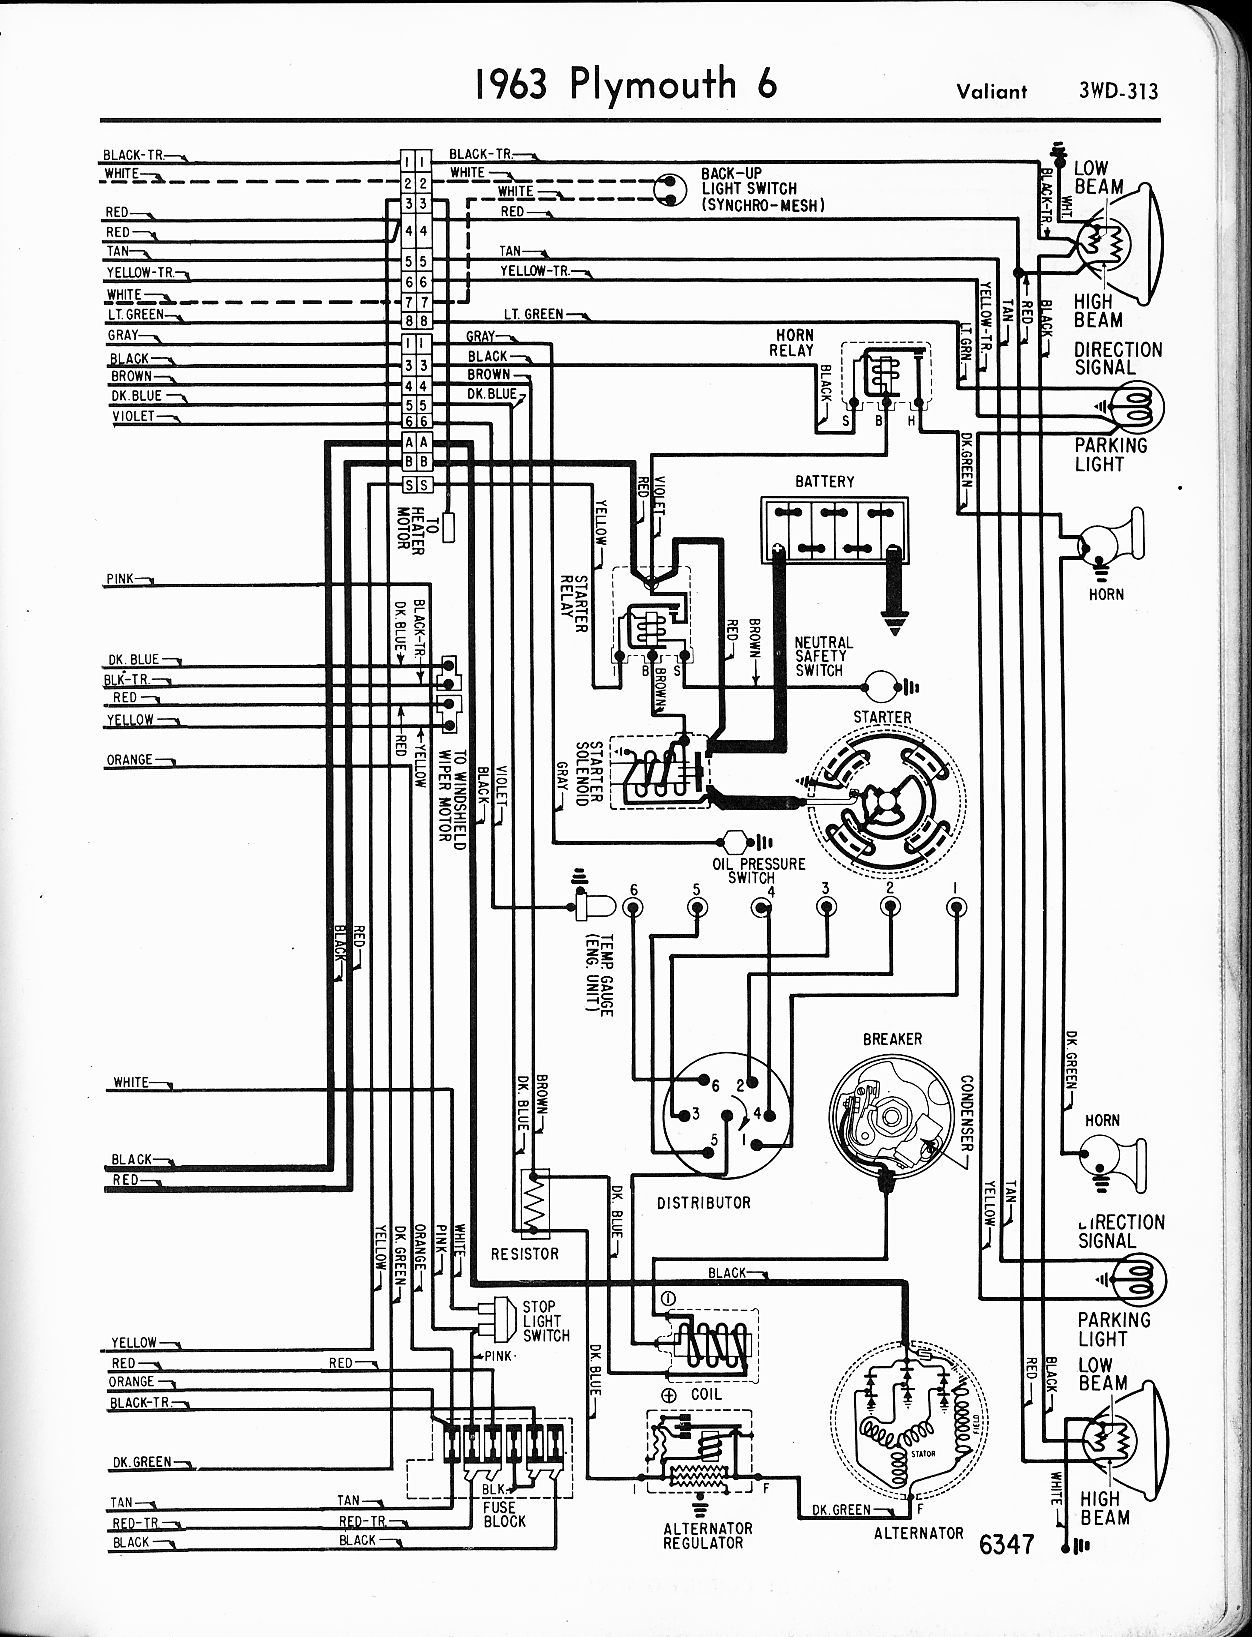 hight resolution of 1963 plymouth wiring diagram wiring diagram1956 1965 plymouth wiring the old car manual project1963 plymouth 6